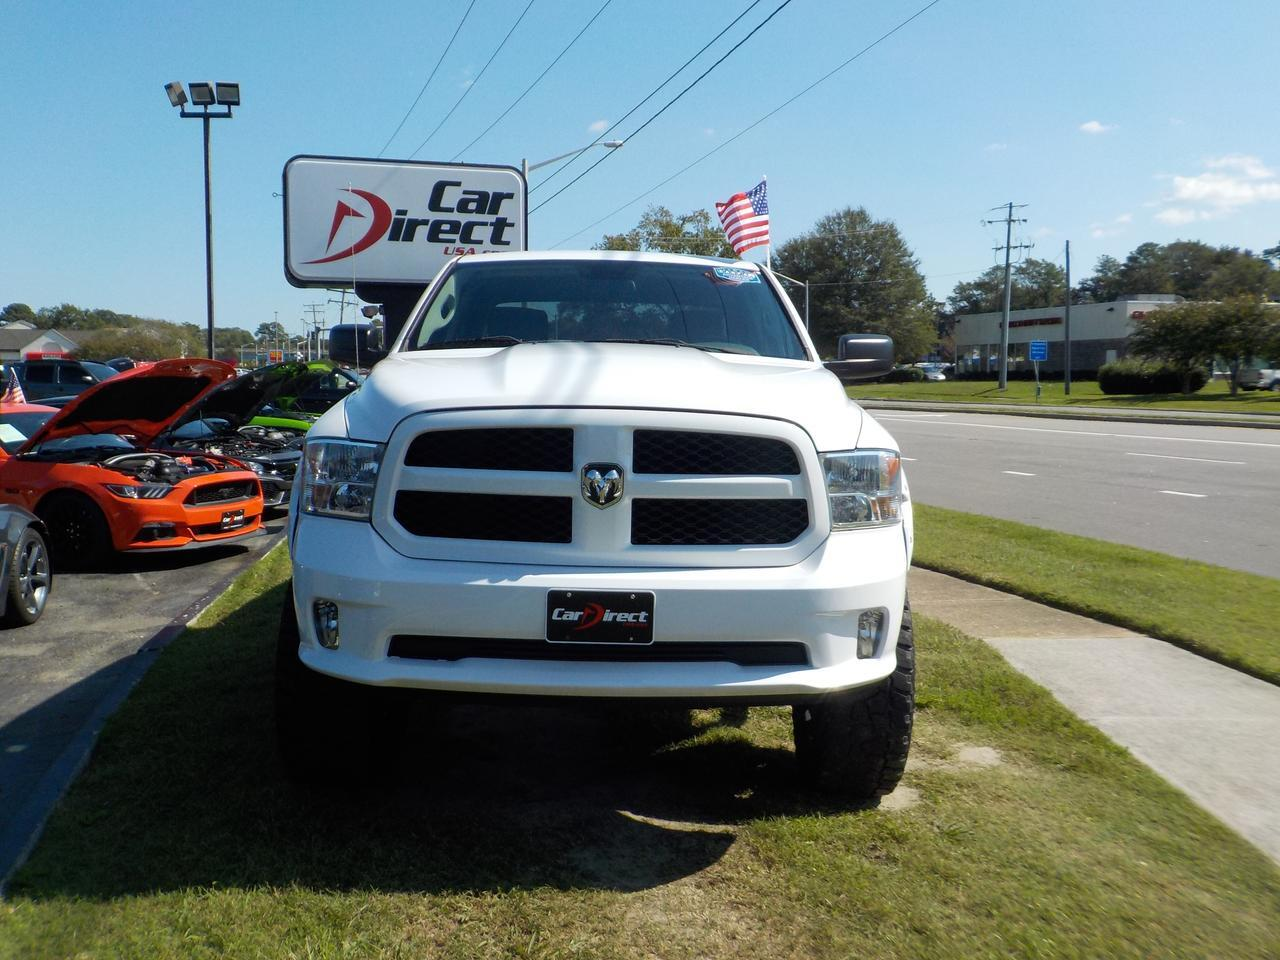 2014 RAM 1500 TRADESMAN CREW CAB 4X4, LIFTED, TOW PACKAGE, RUNNING BOARDS, BED LINER, ONLY 40K MILES! Virginia Beach VA